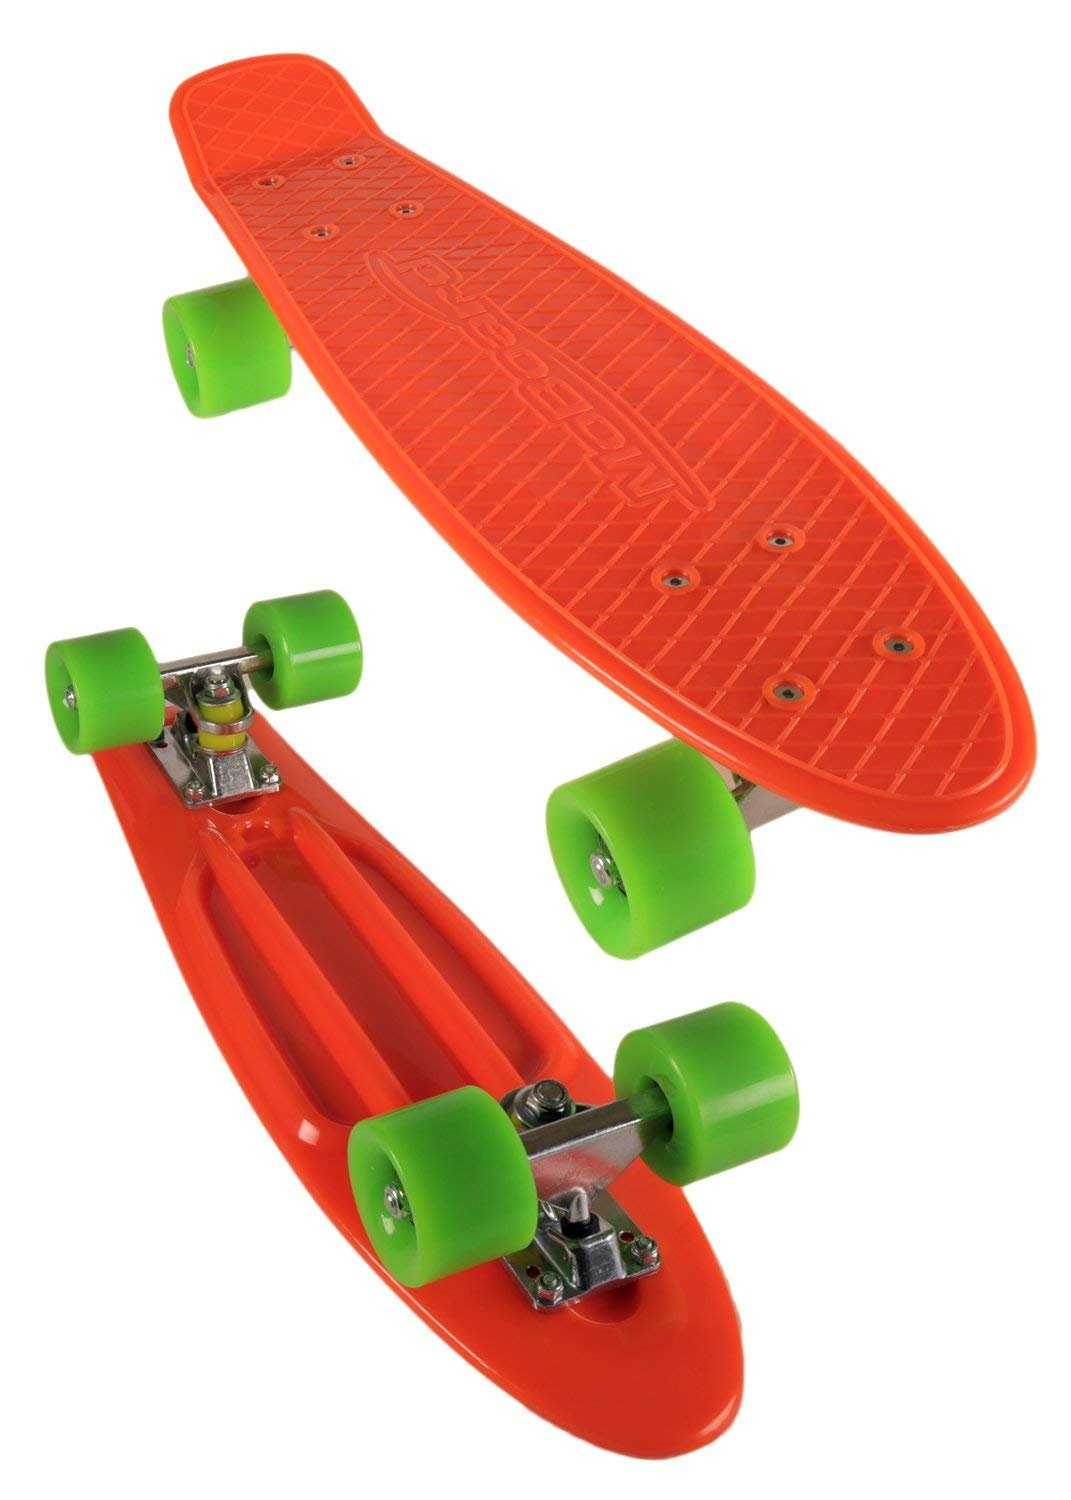 MoBoard Graphic Complete Skateboard | Pro/Beginner | 22 inch Vintage Style with Interchangeable Wheels | (Orange-Green)